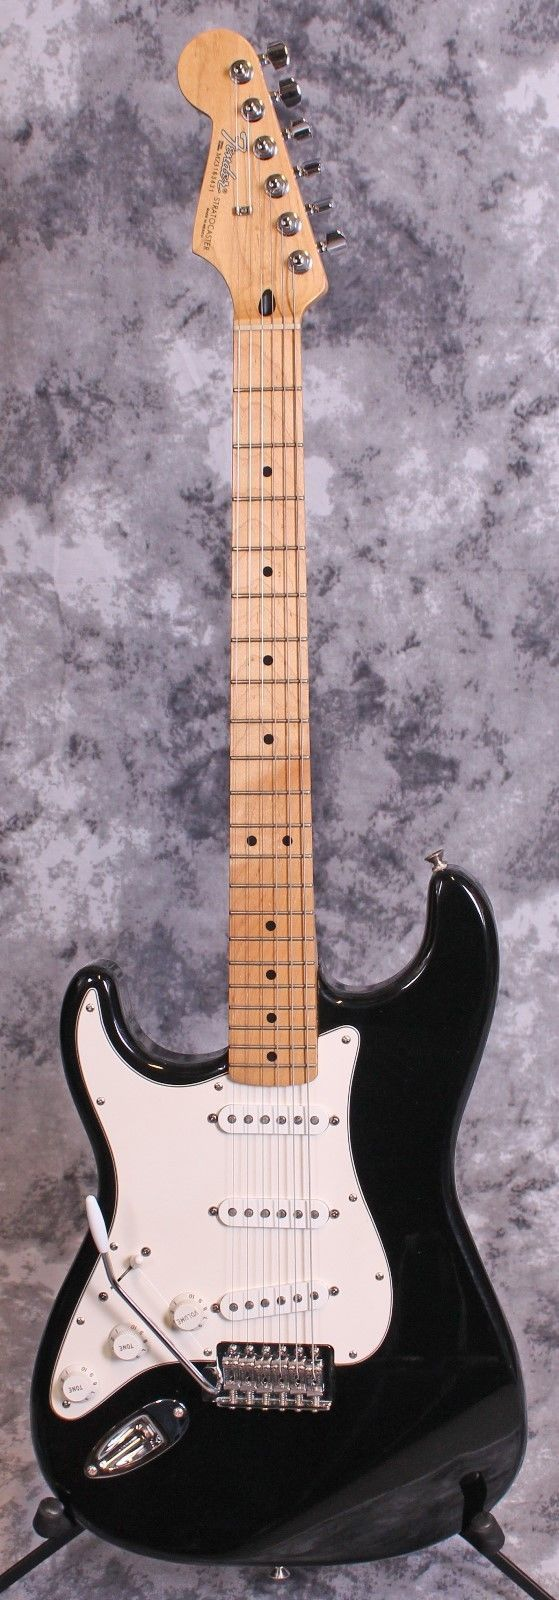 FENDER STRATOCASTER Made In Mexico 2003 LEFT HANDED LEFTY LEFT HAND